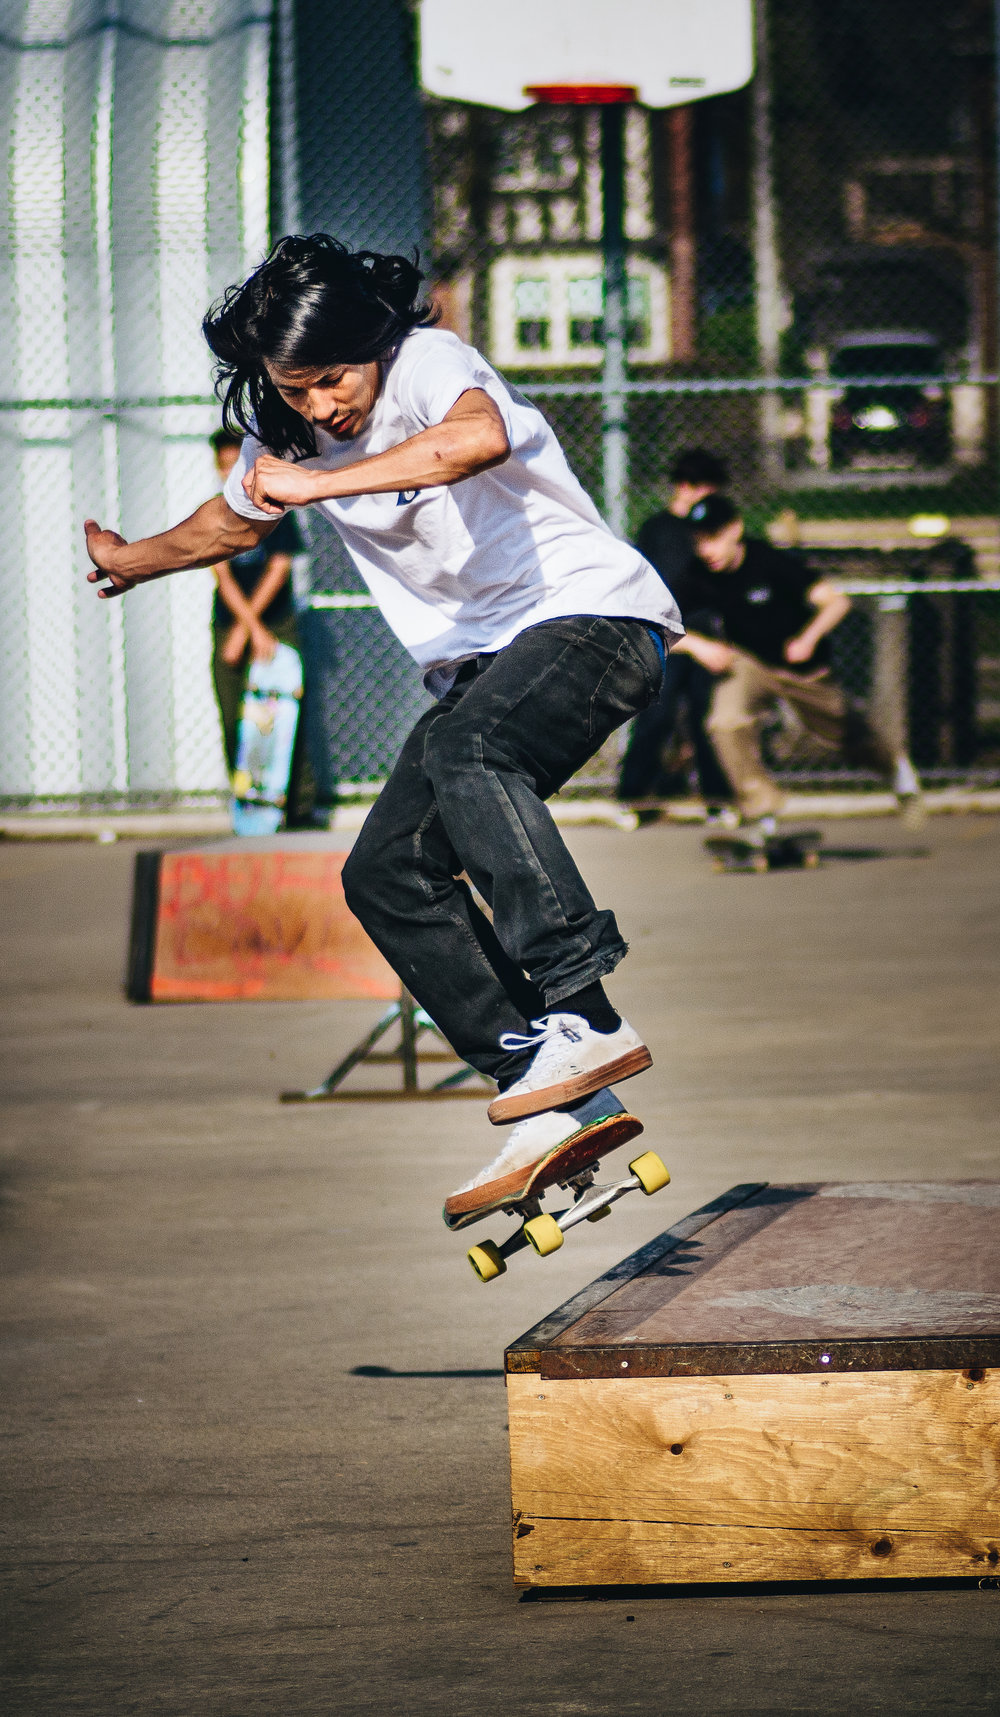 Skateboarding at Dufferin Grove skatepark, Toronto, 2017.